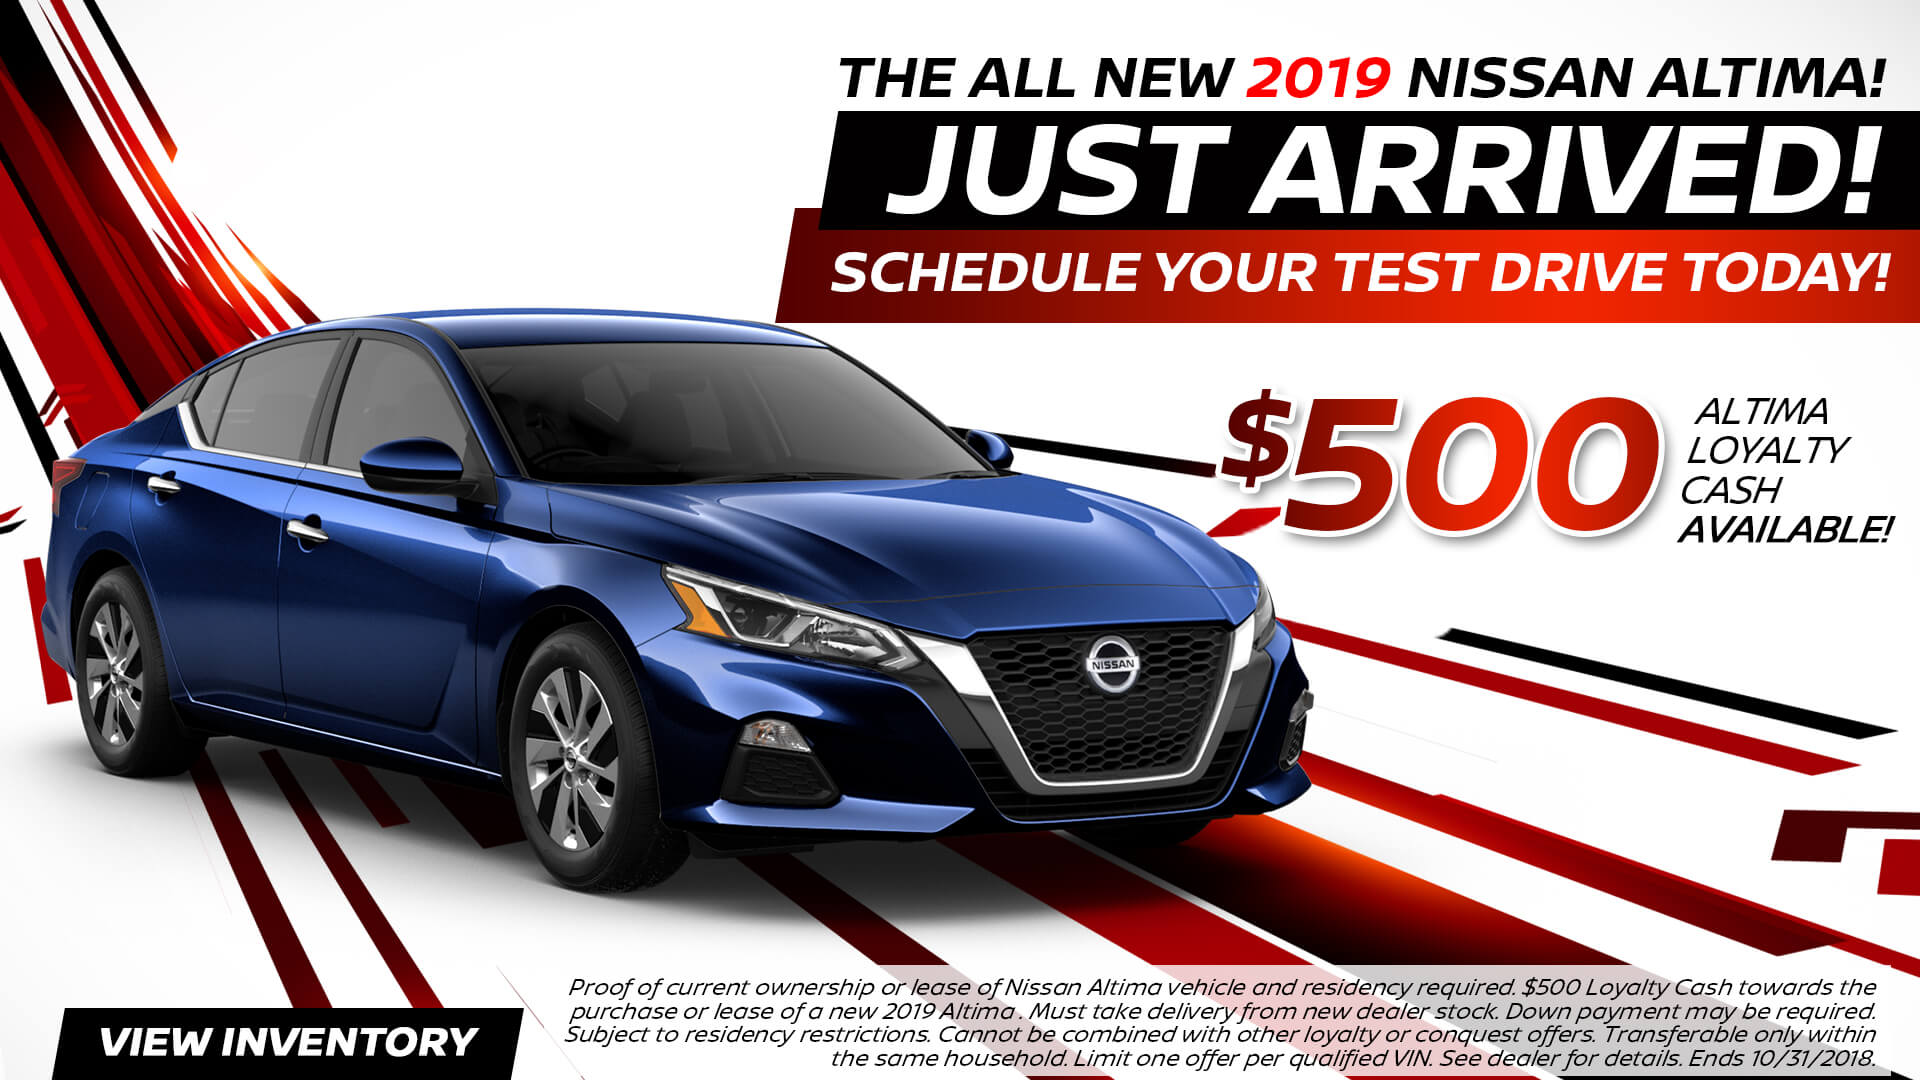 2018 Nissan Altima Special Offer